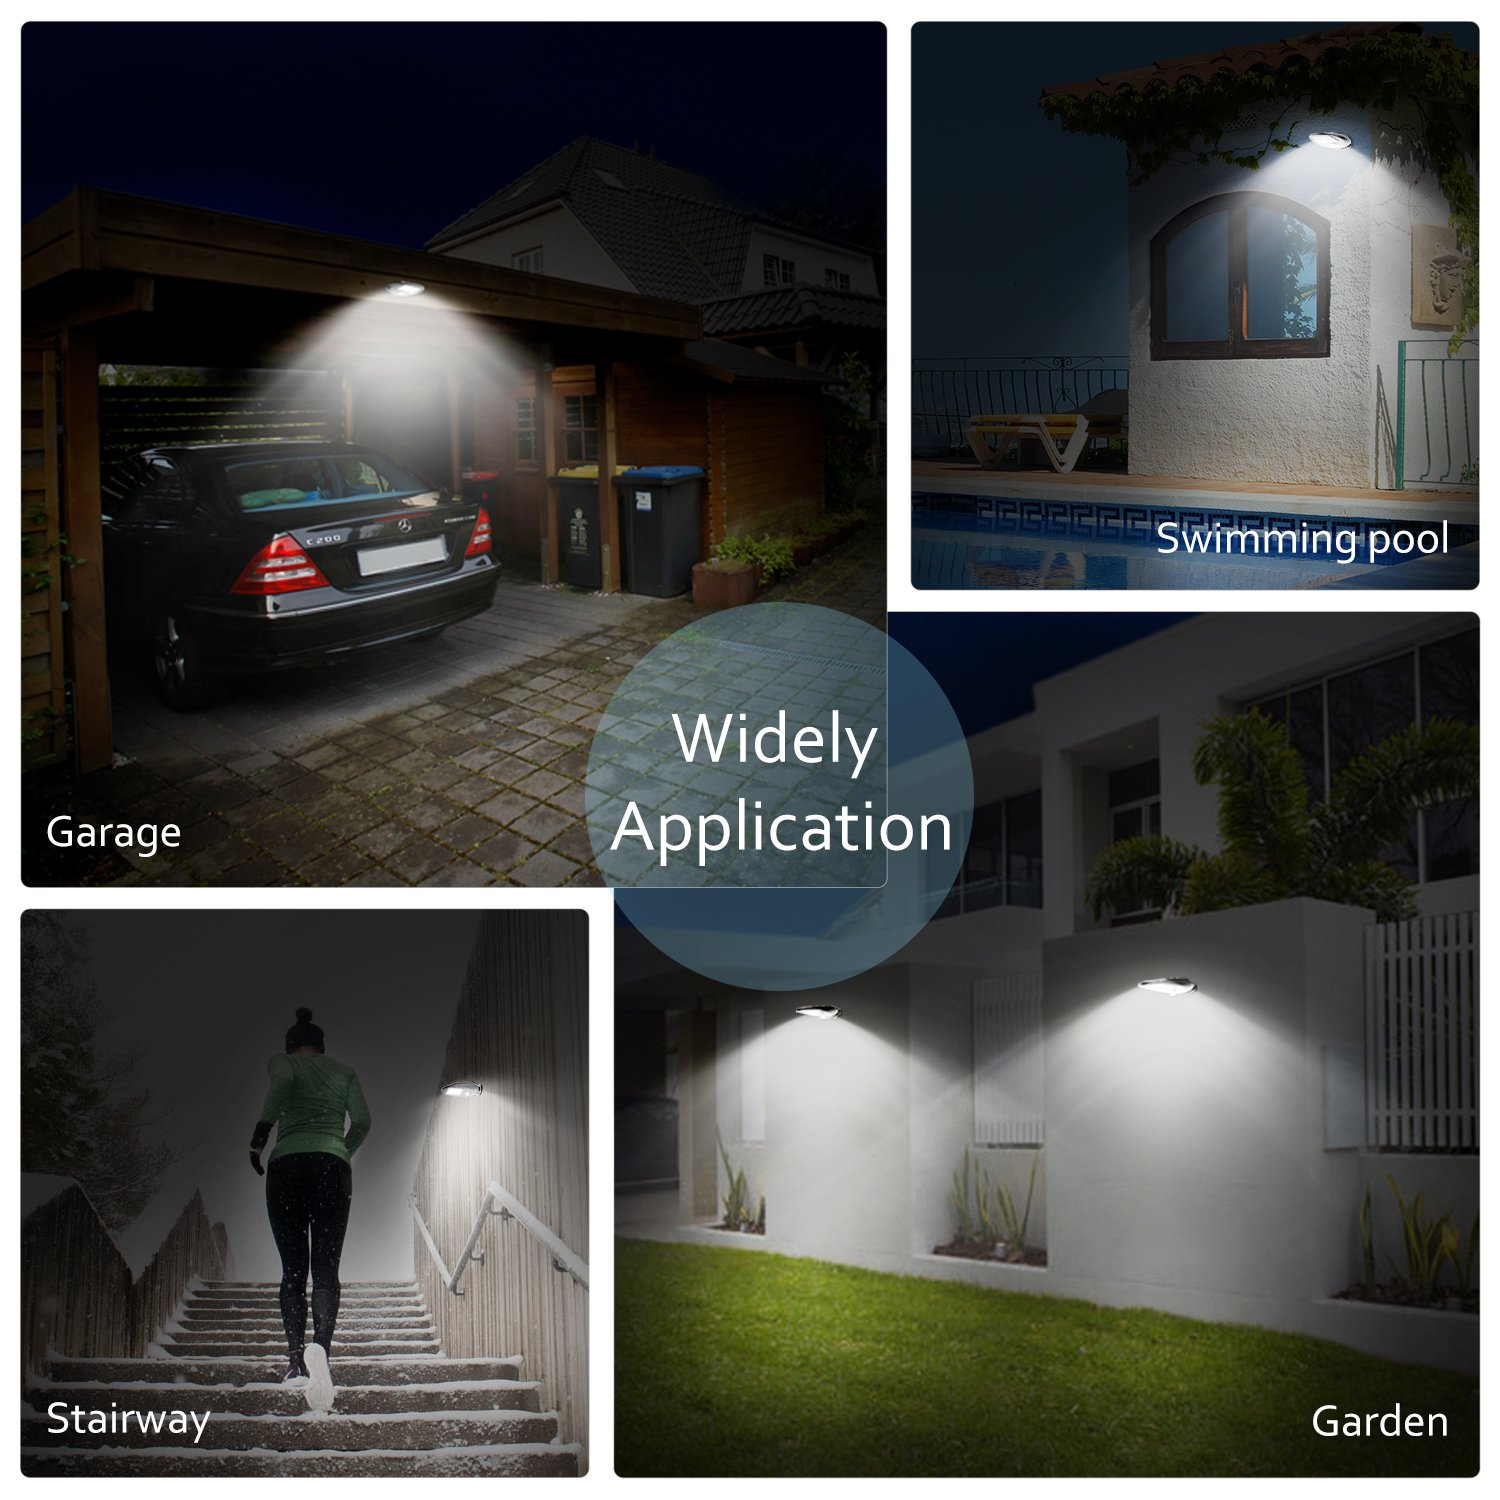 4-Pack Garage D03-1693N-02 Back Yard Driveway Fence Solar Lights Outdoor Stairway OxyLED 30 LEDs Super Bright Motion Sensor Solar Light Wireless Waterproof Security Lights Wall Lamp for Front Door